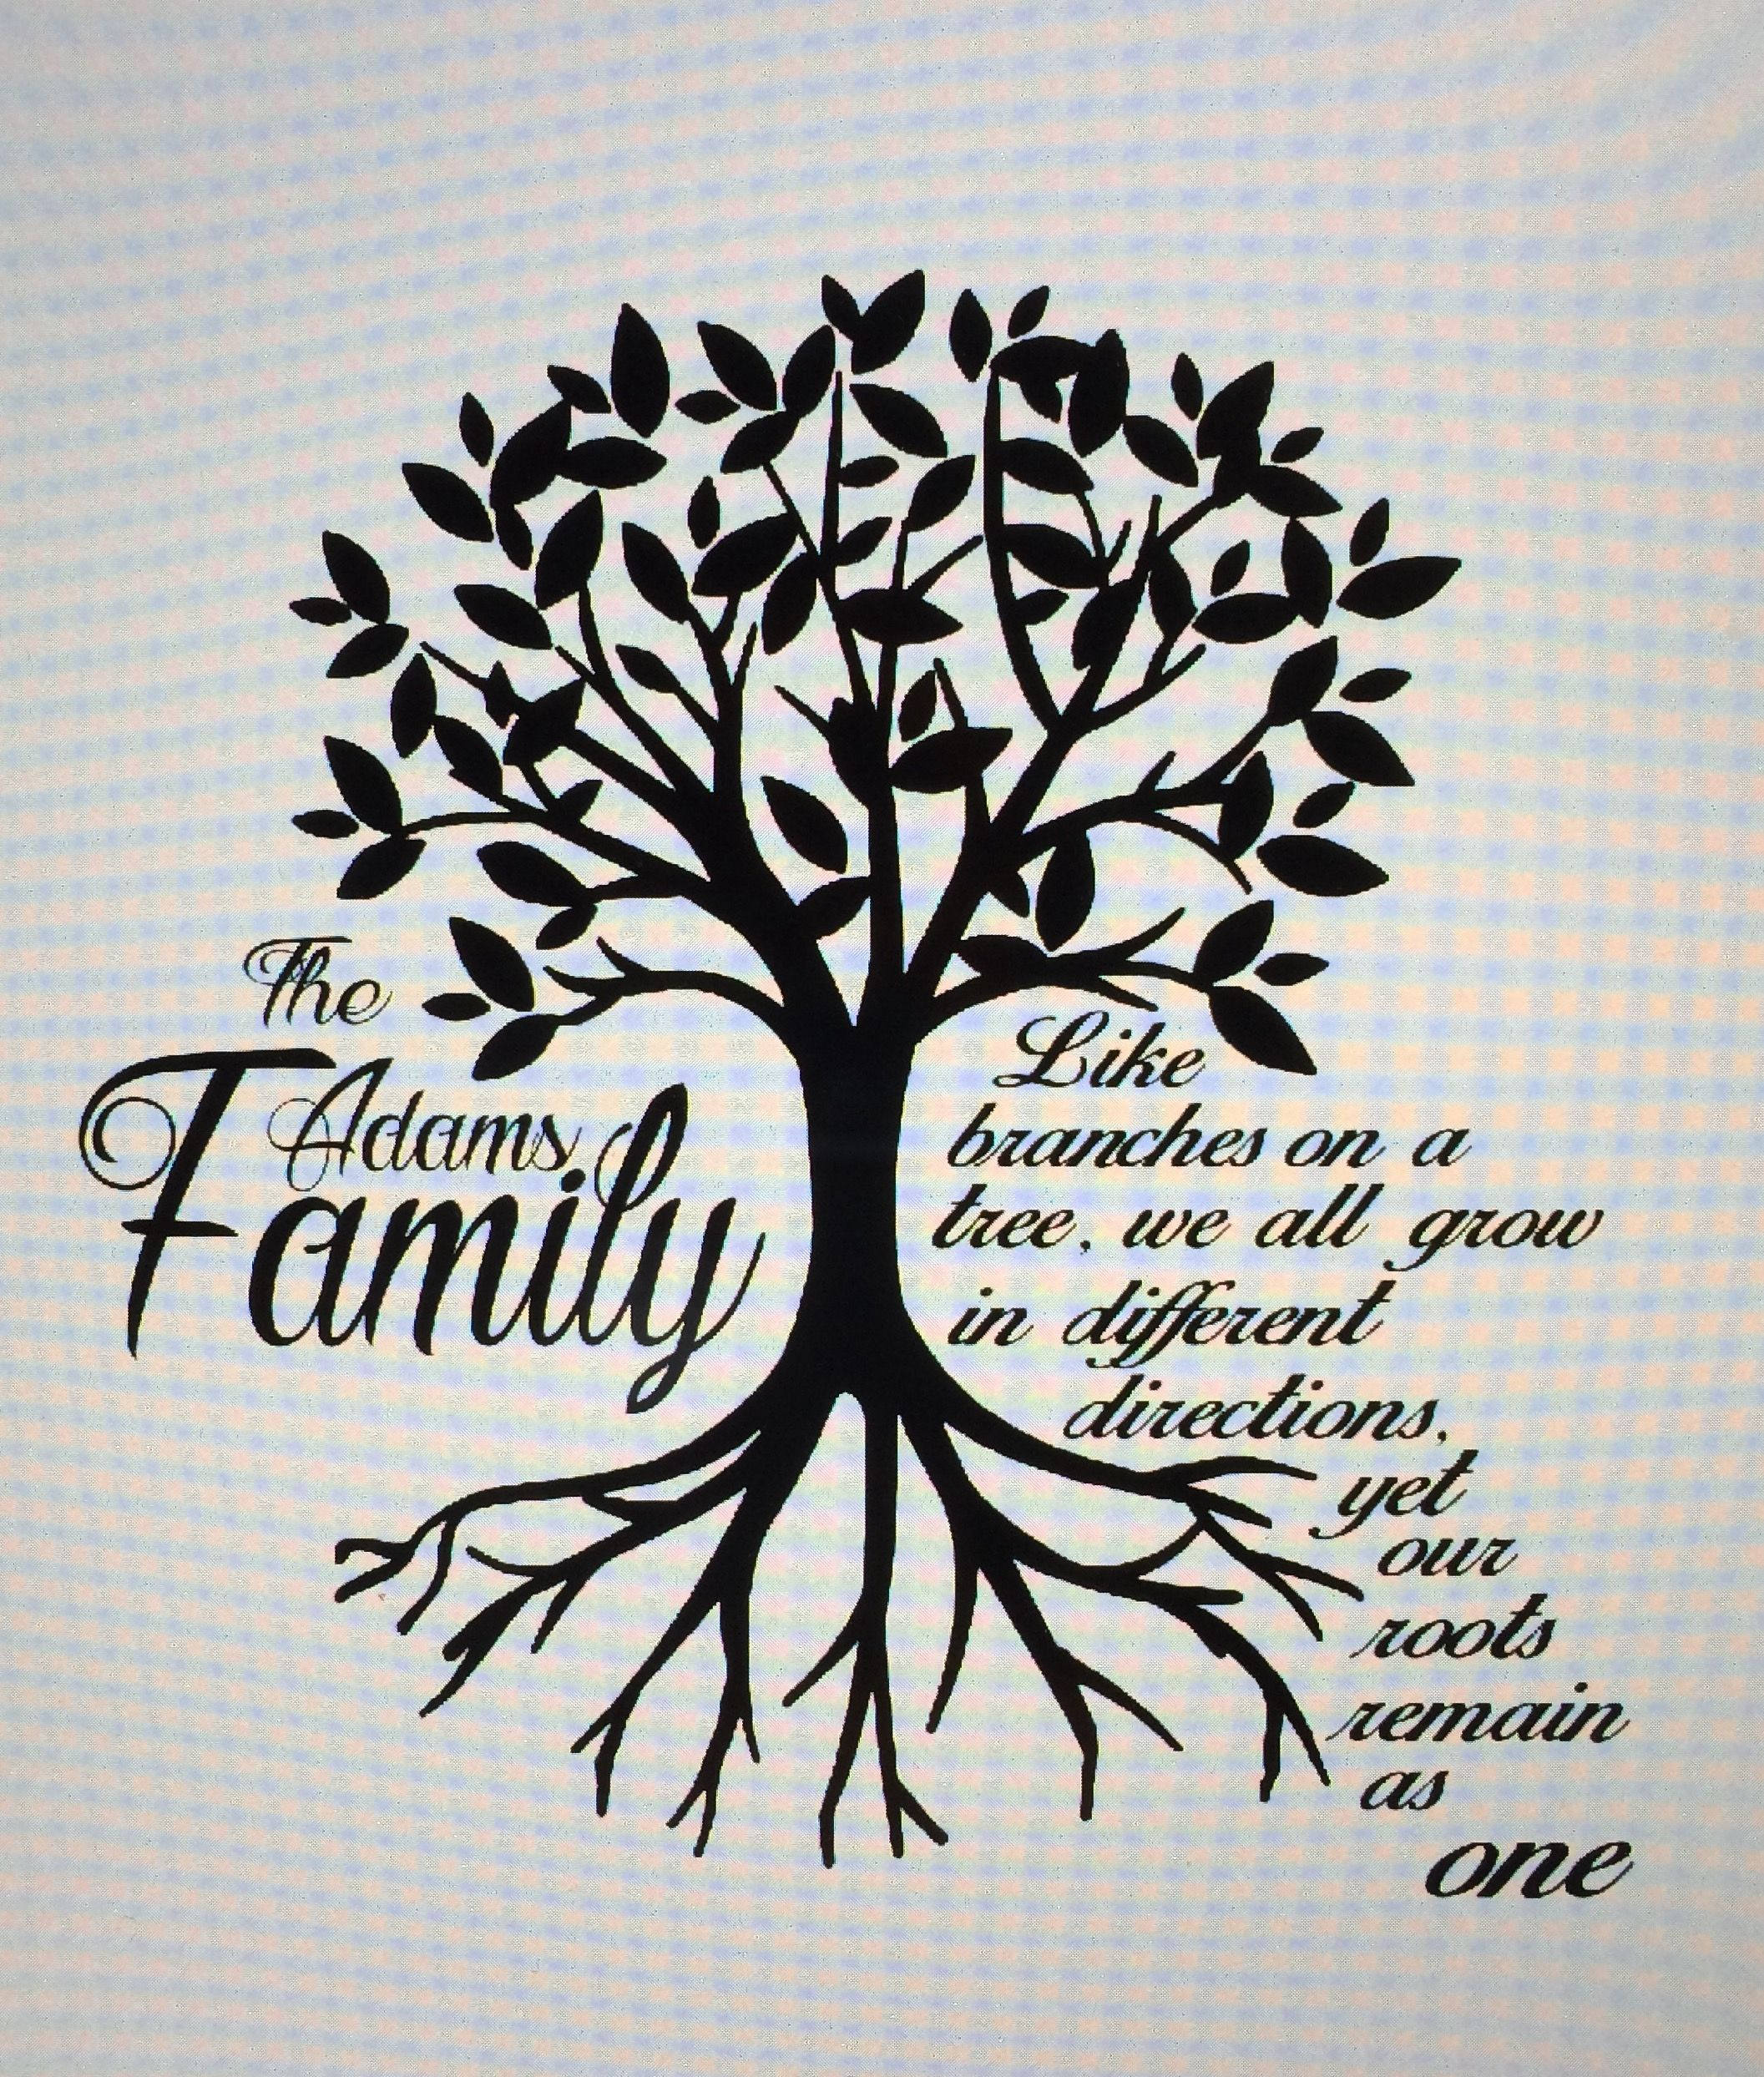 Family Reunion Shirt Design Made By Me